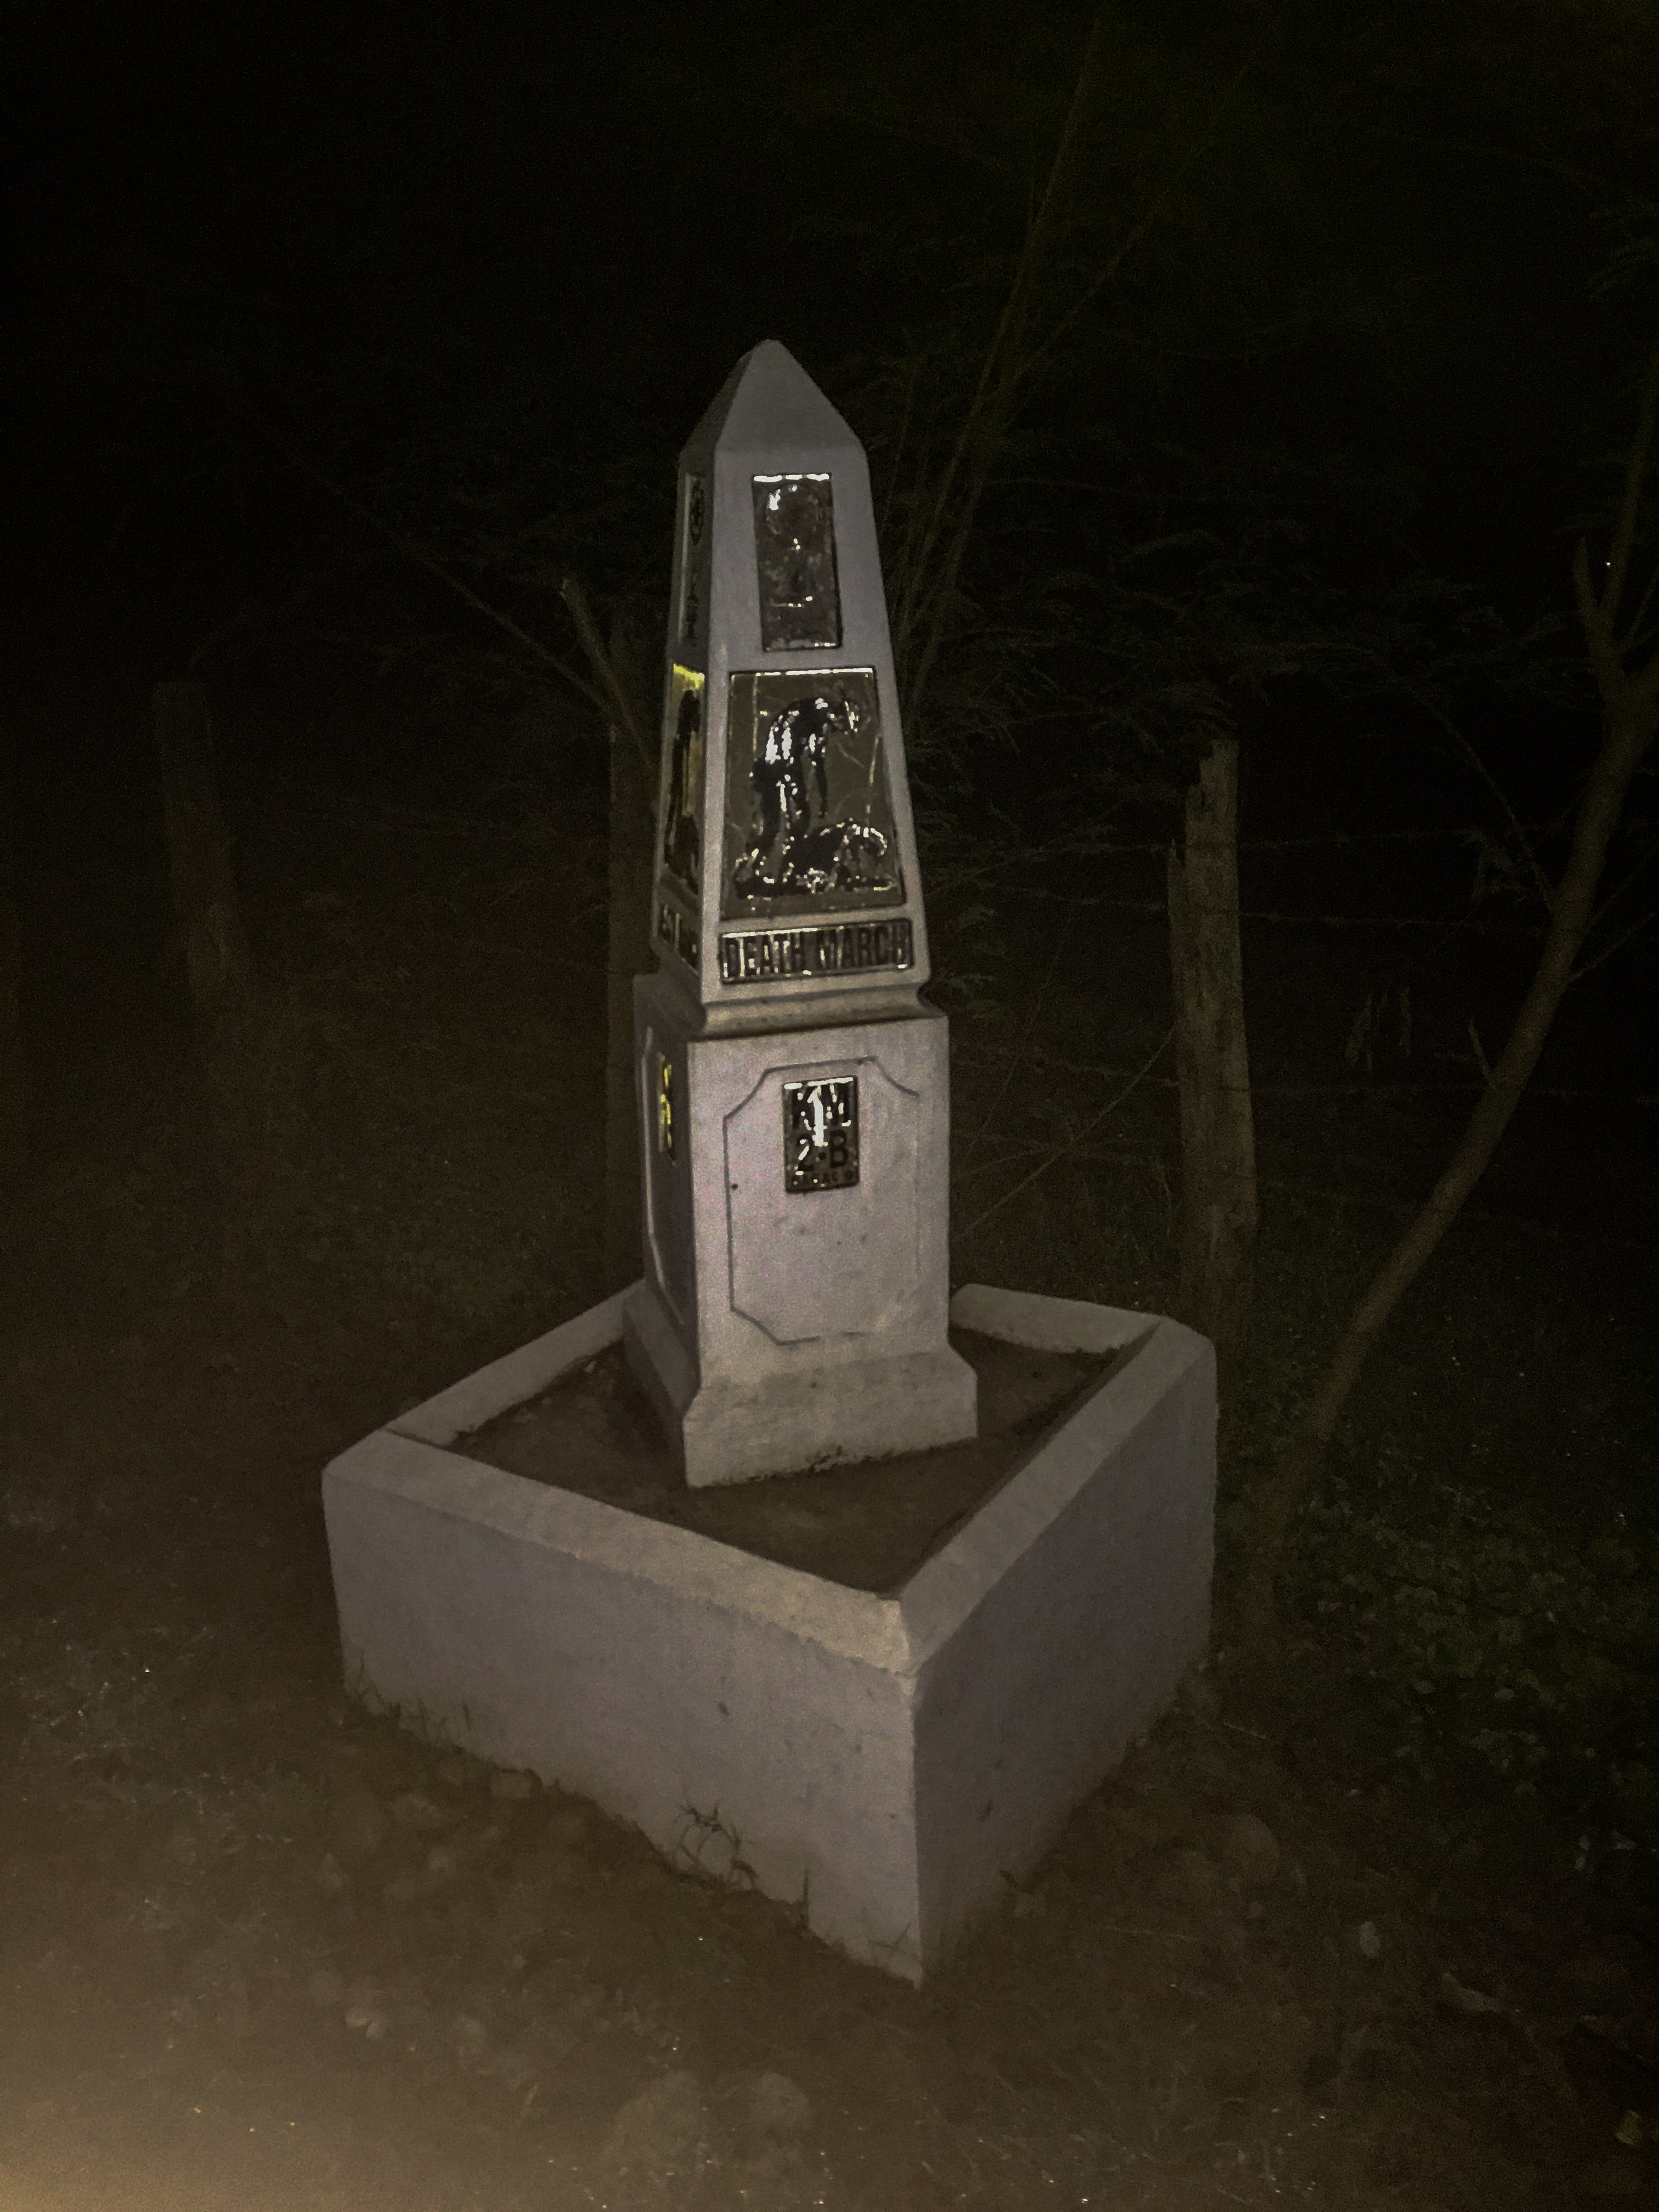 Bataan Death March Marker in Bagac Bataan Philippines at night